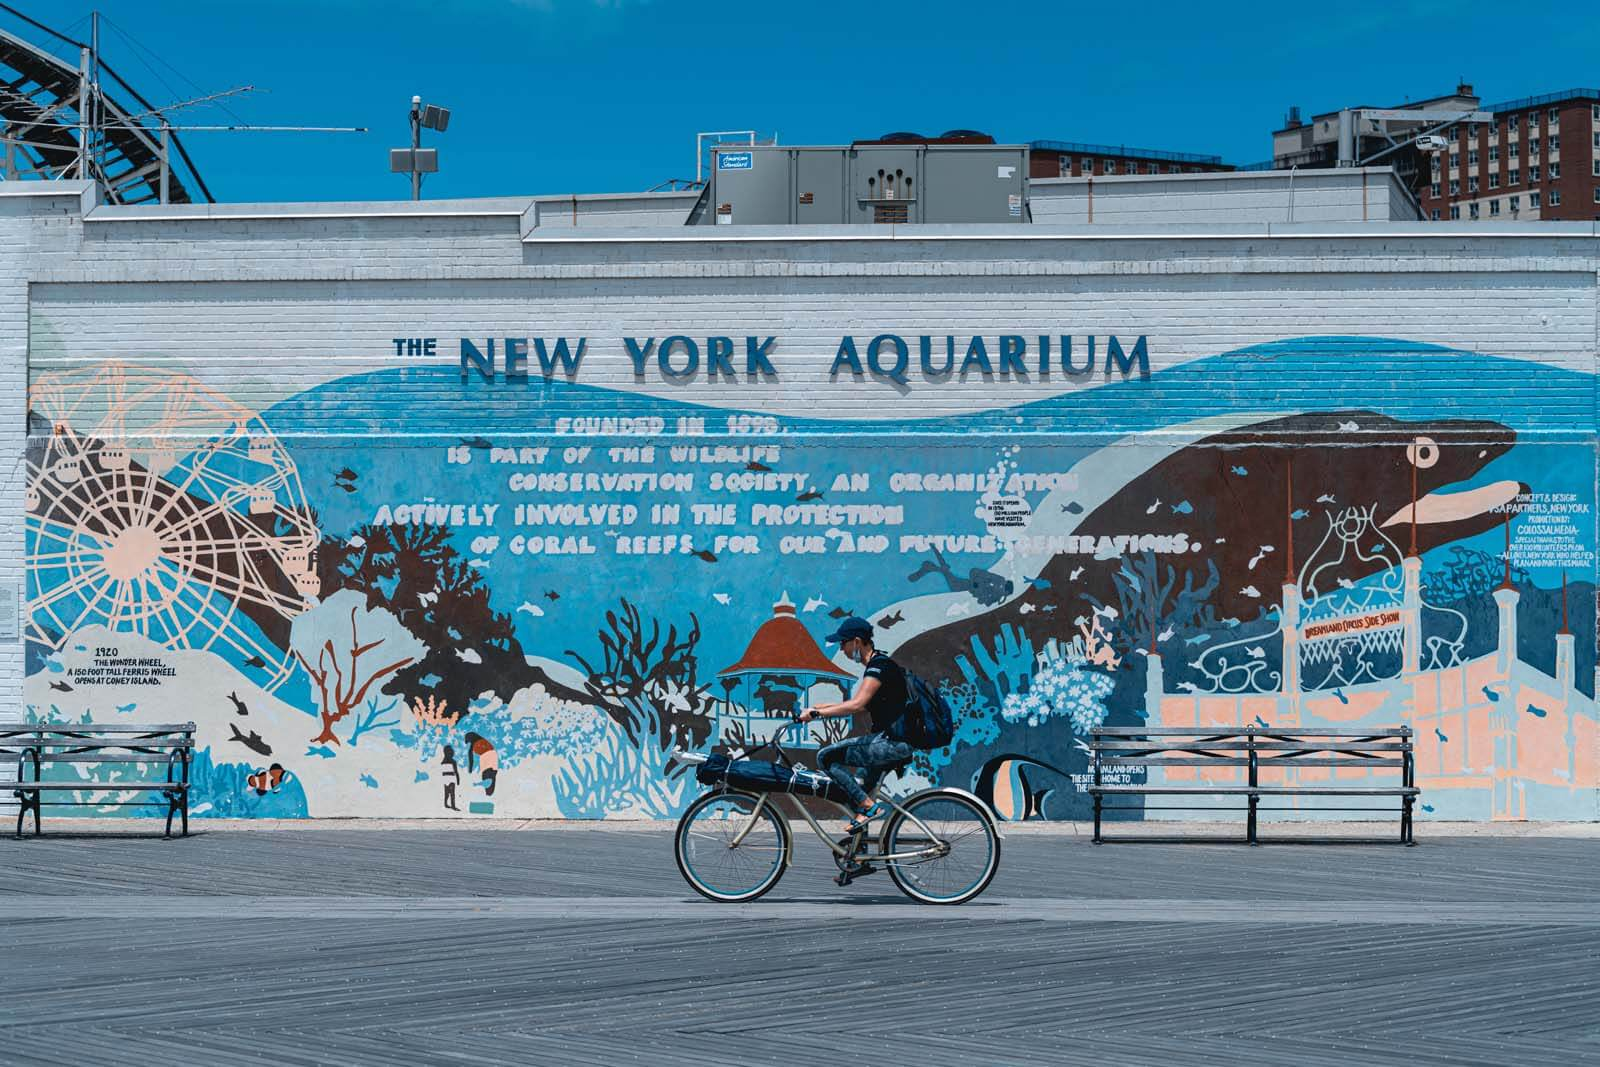 New York Aquarium mural at Coney Island